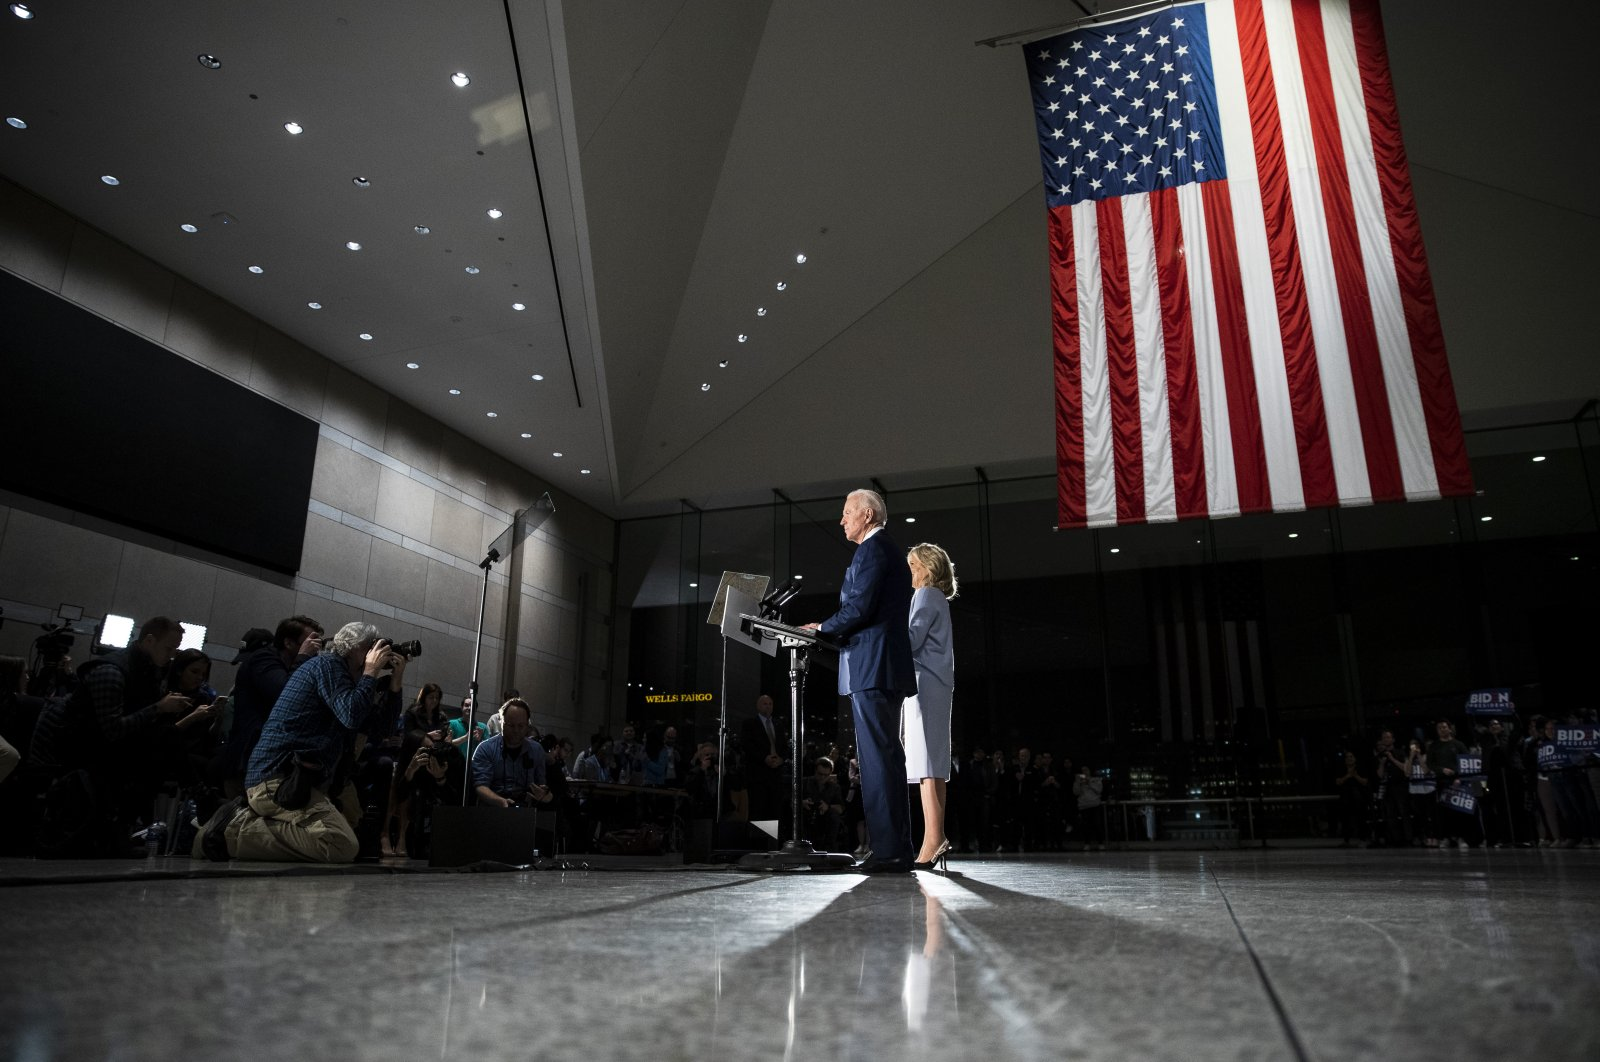 Democratic presidential candidate former Vice President Joe Biden, accompanied by his wife Jill, speaks to members of the press at the National Constitution Center in Philadelphia, Tuesday, March 10, 2020. (AP Photo)